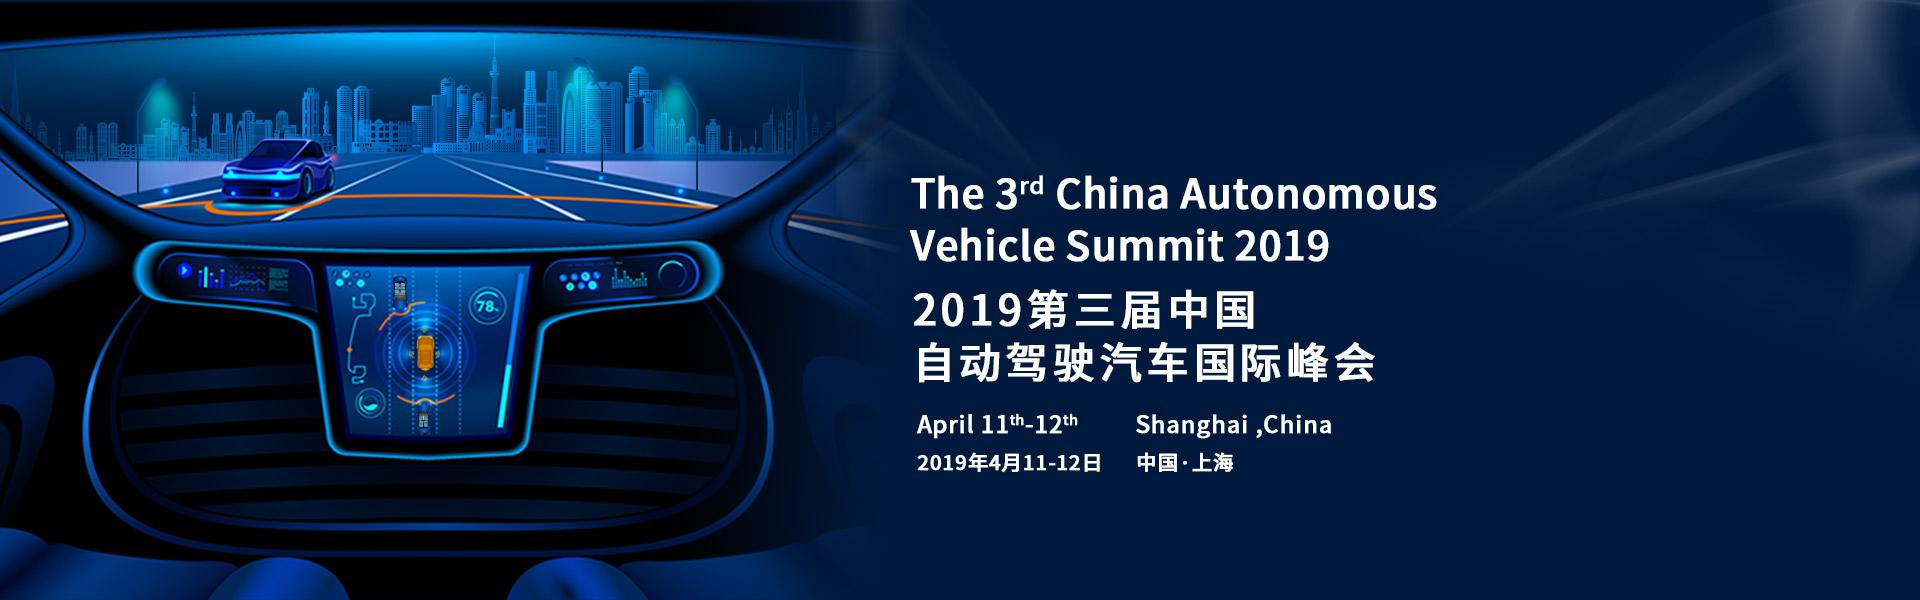 The 3rd China Autonomous Vehicle Summit 2019